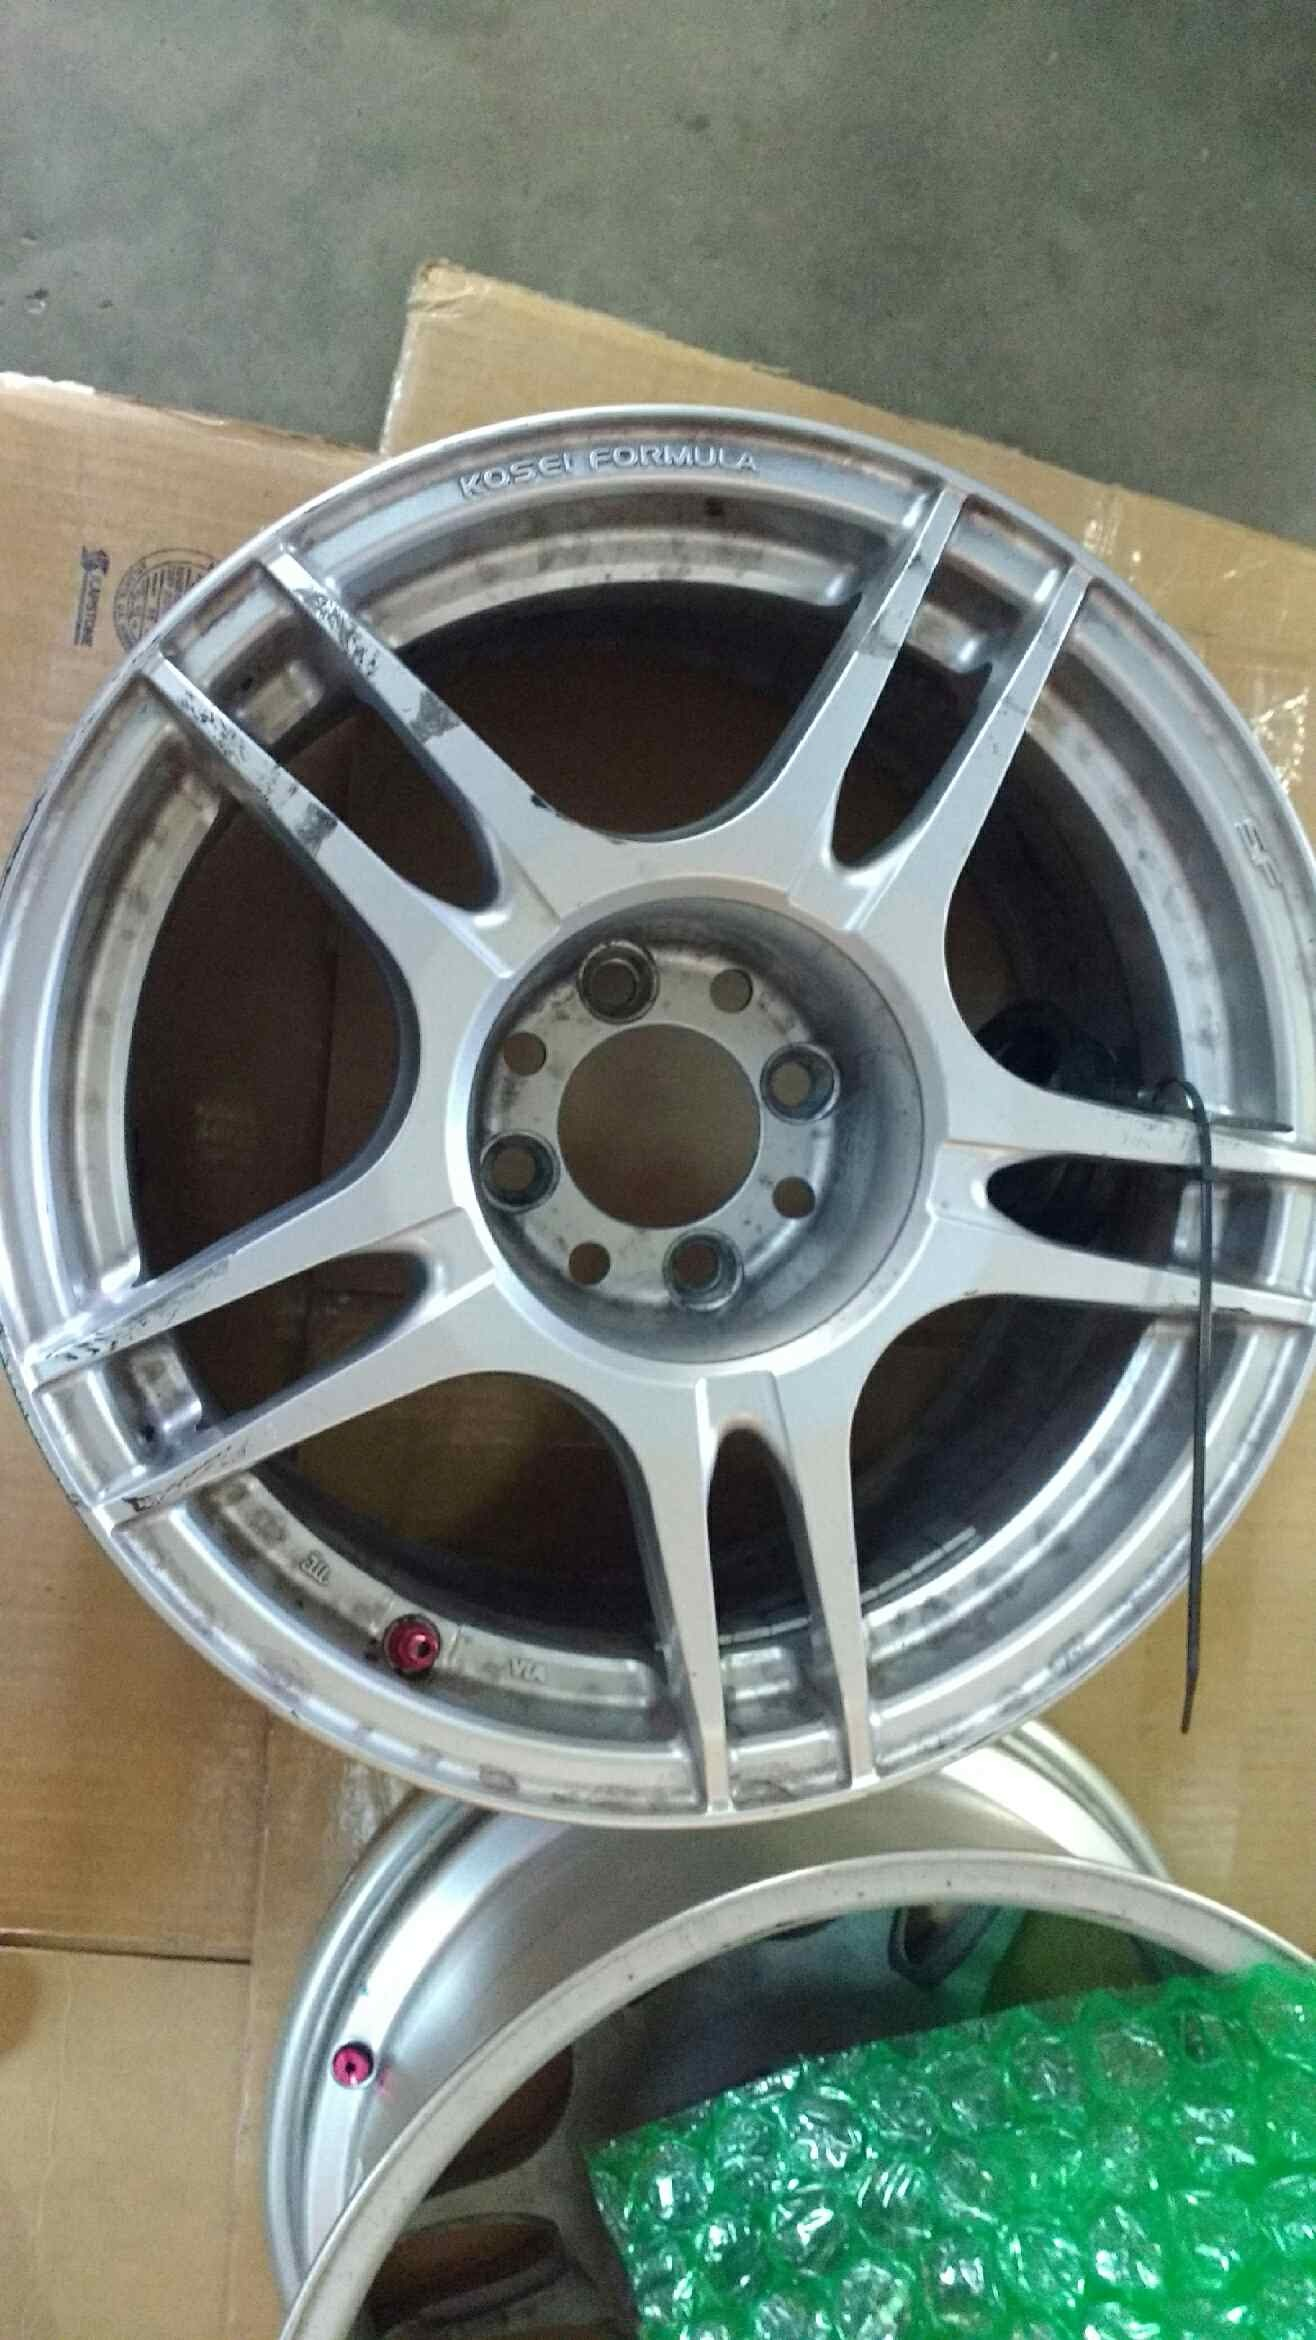 Kosei K5R wheels for sale - The Source for Cars, Parts & Services ...